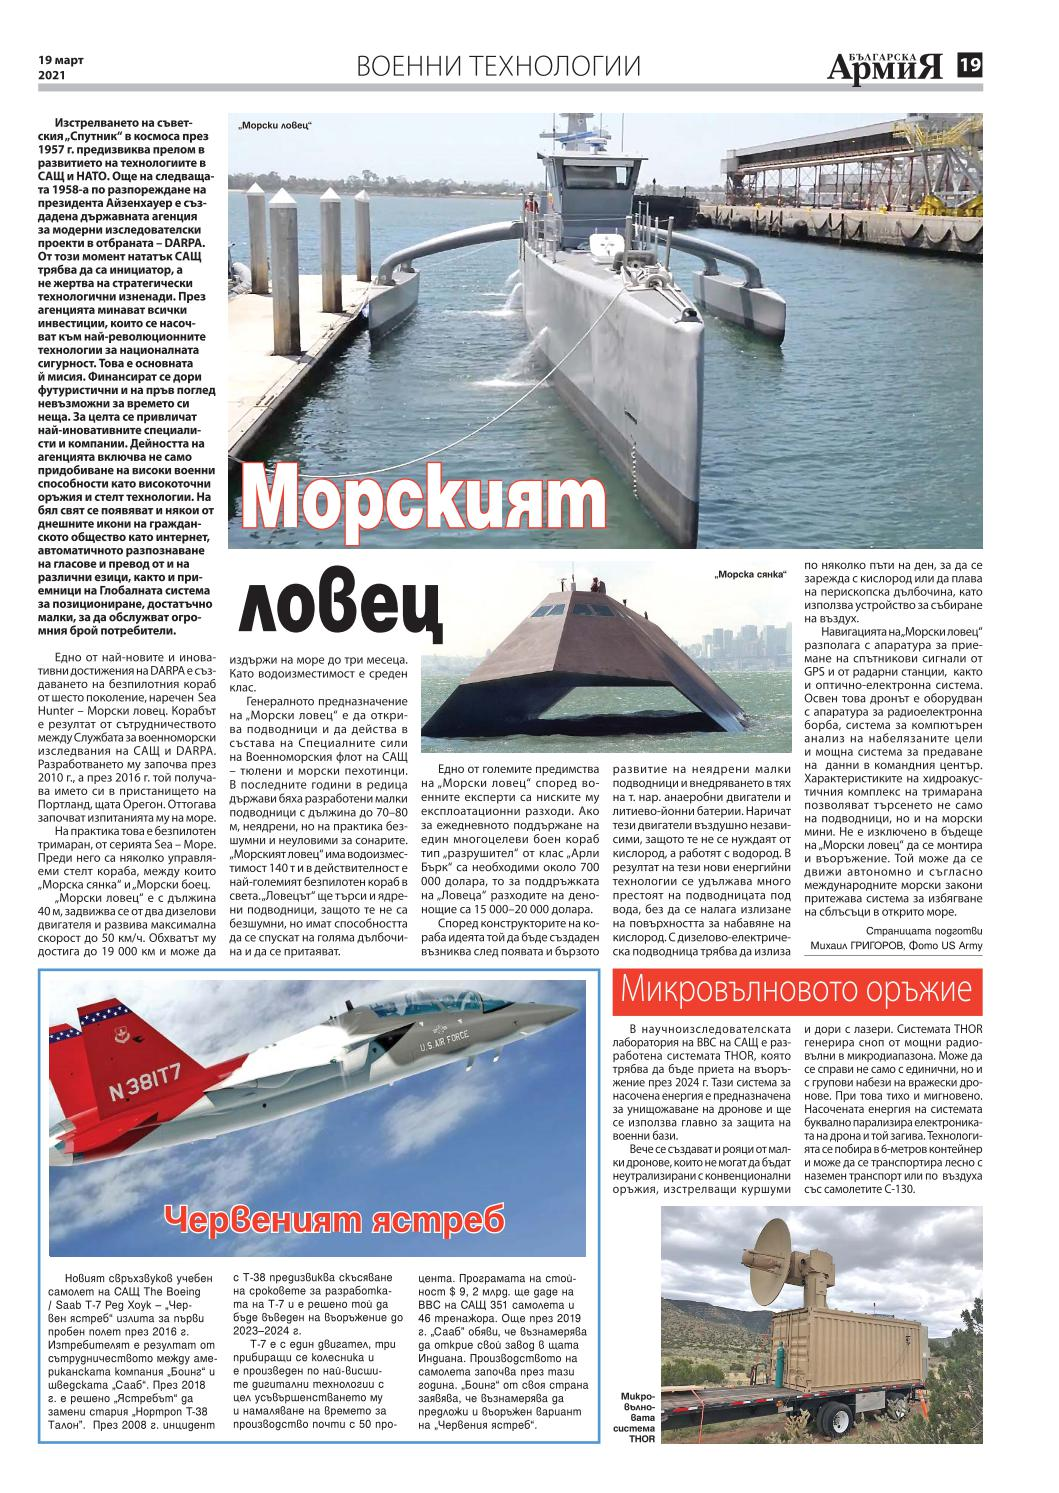 https://armymedia.bg/wp-content/uploads/2021/04/19.page1_-155.jpg